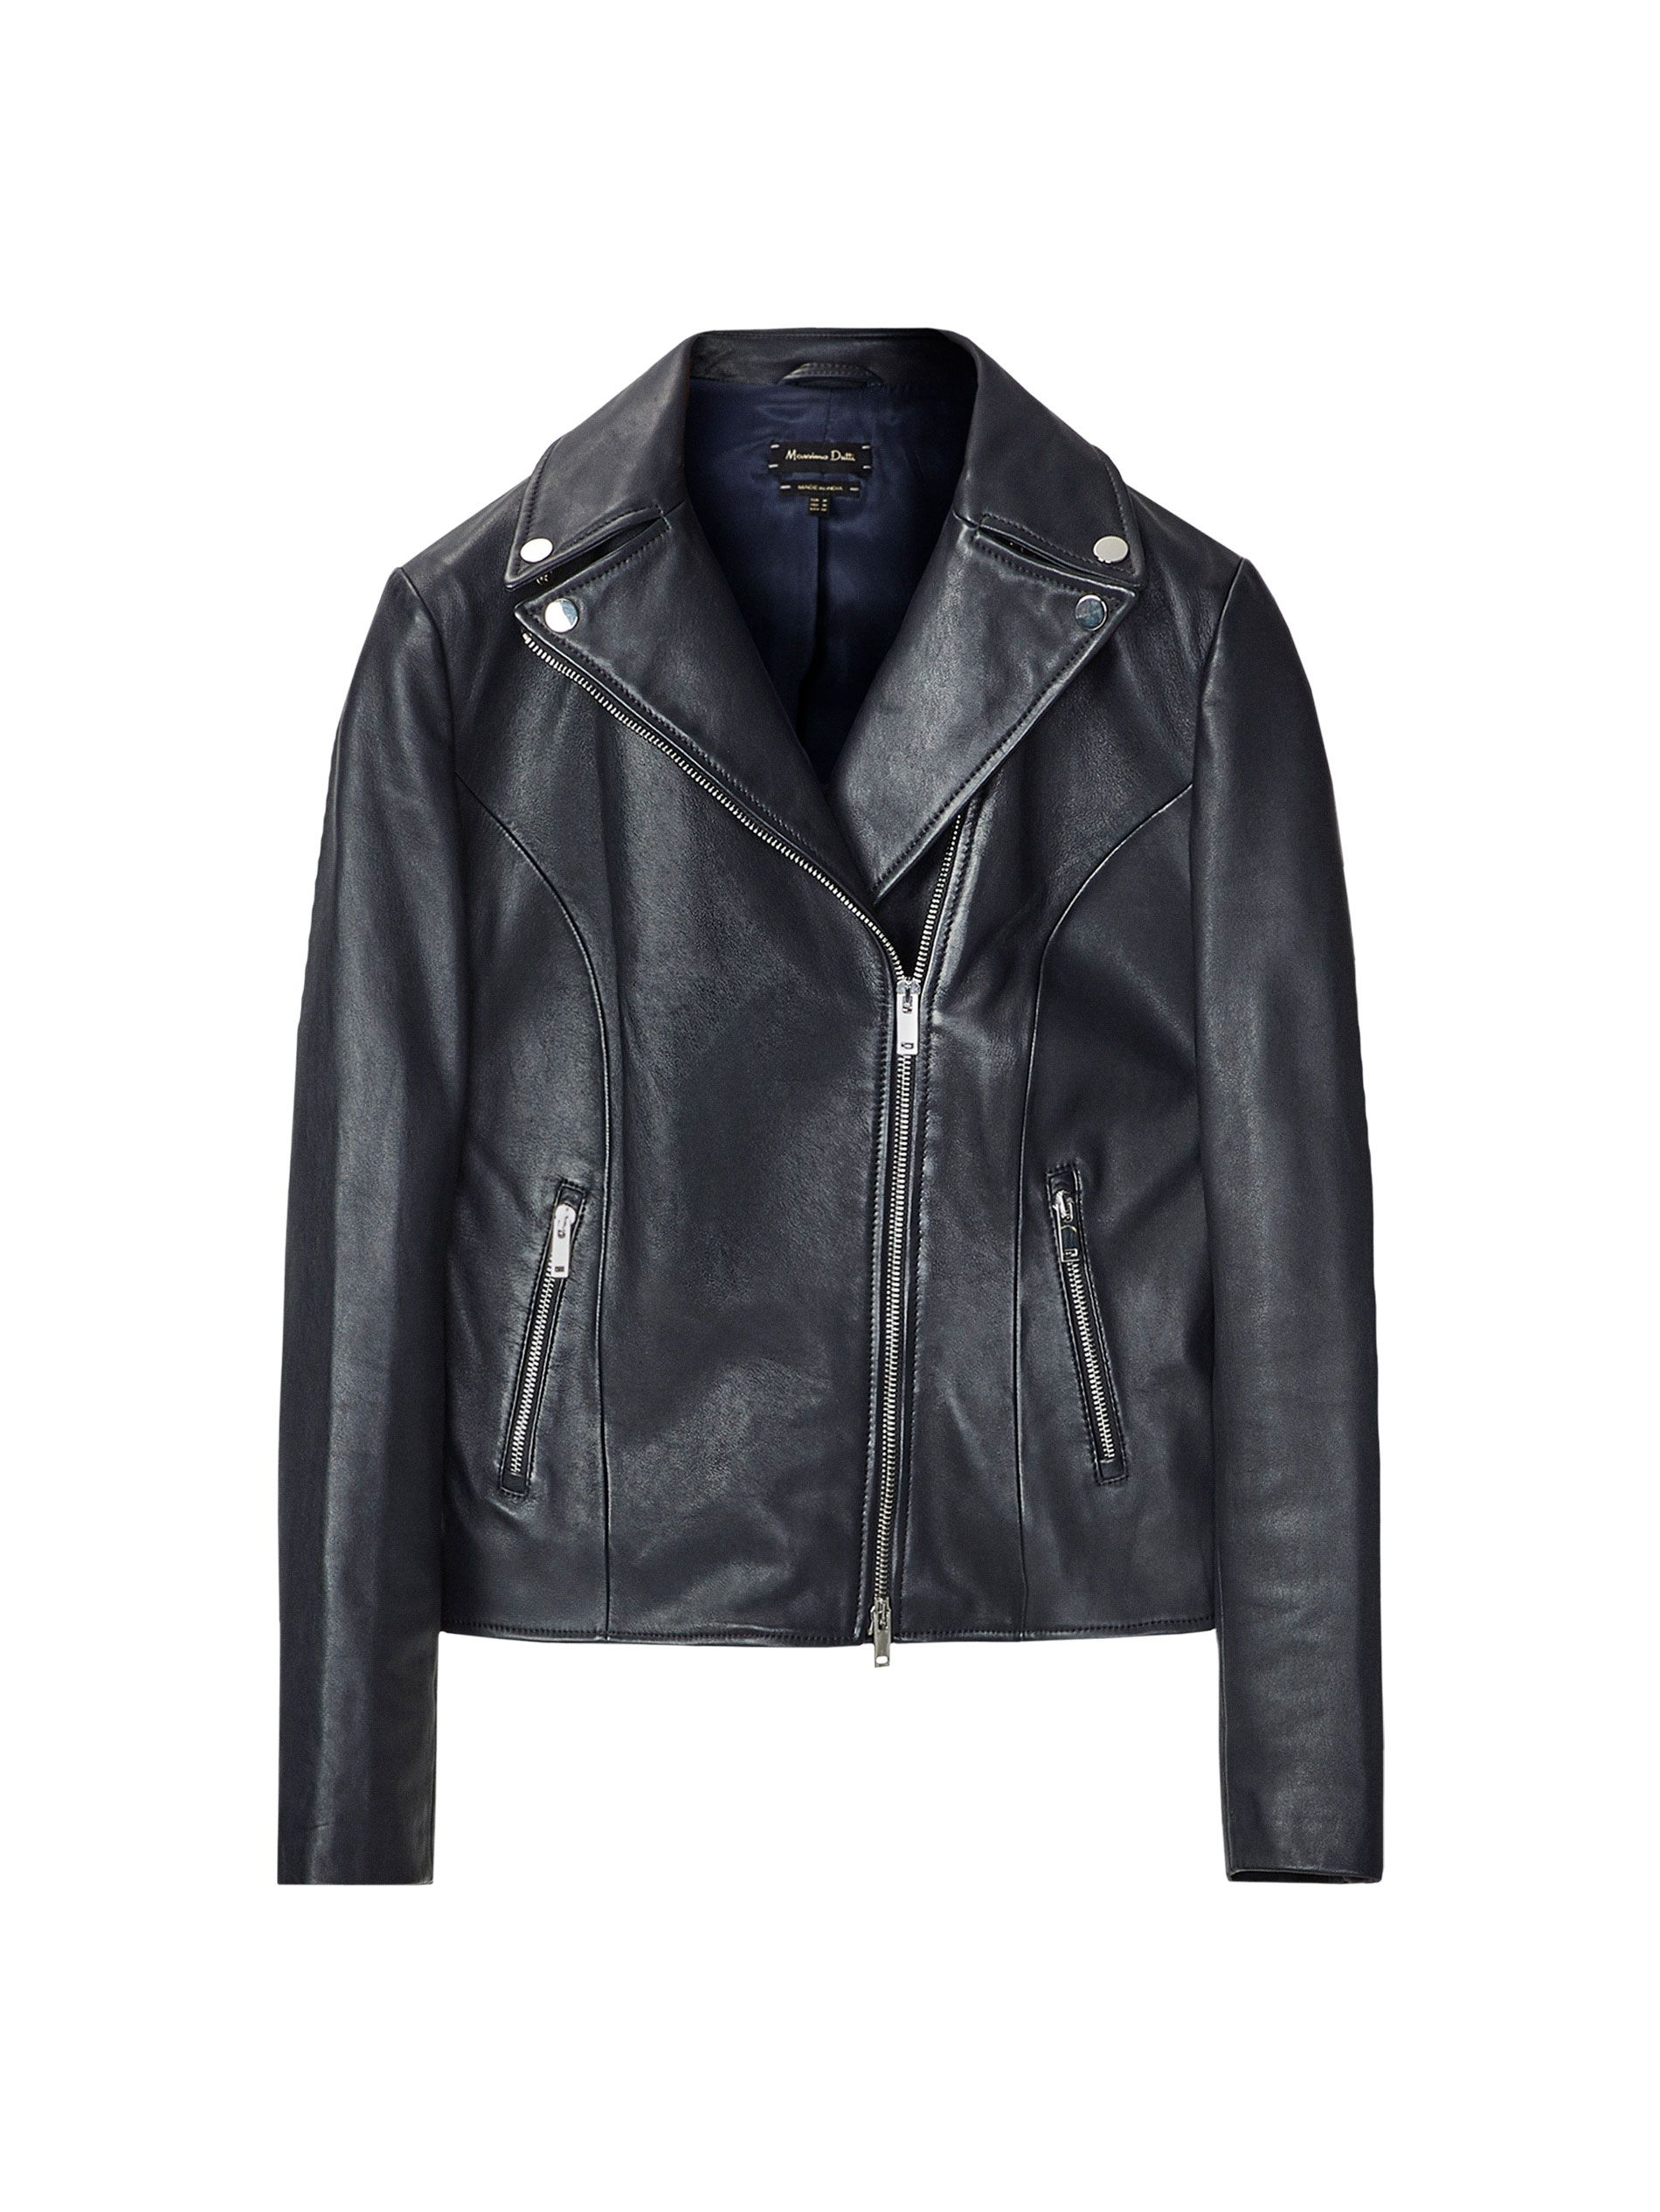 Tailored, blue, nappa biker jacket made of high quality sheepskin leather. Features notched lapels with snap buttons, double breasted two zip fastening, two side zip pockets, long sleeves with hidden snap buttons at the cuffs and a lined interior. The length of the back of the garment for a size M is 54.5 cm.